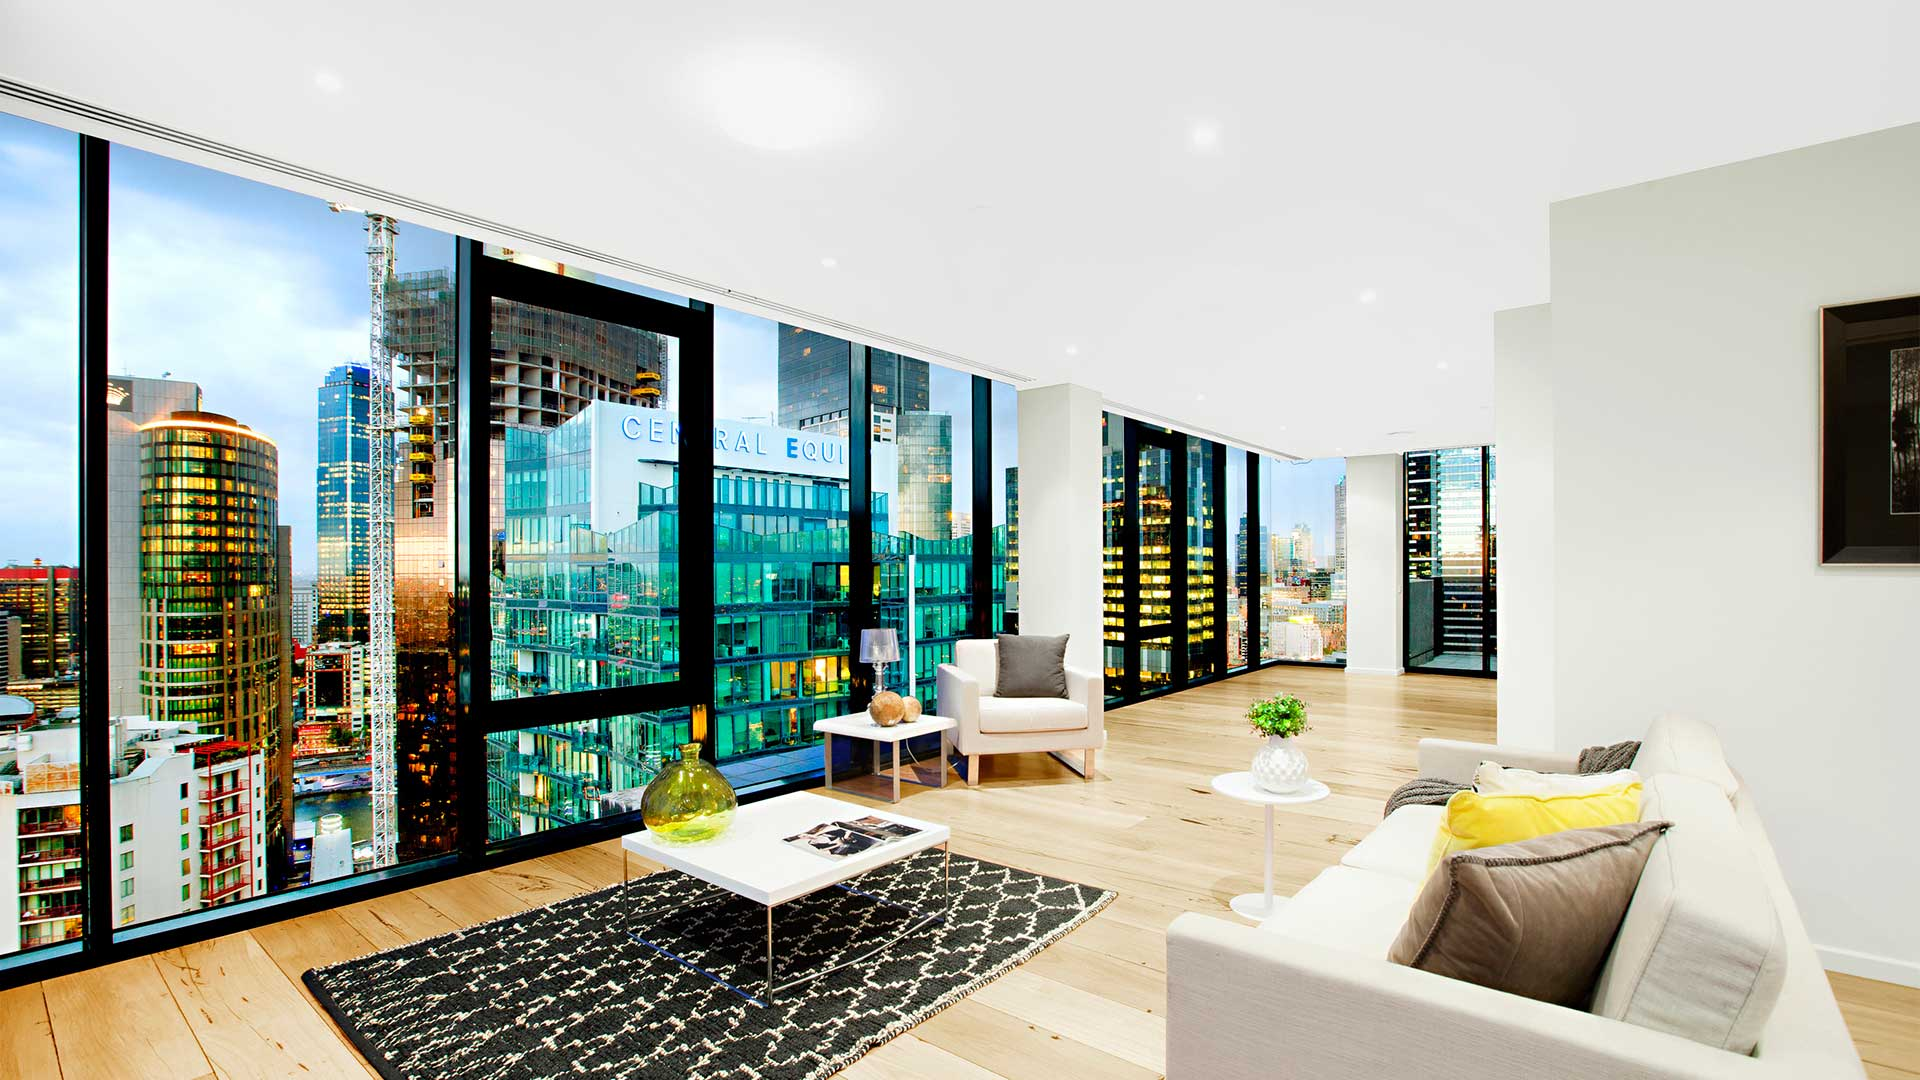 Factors Responsible for Residential Real Estate Market Growth in Gurgaon